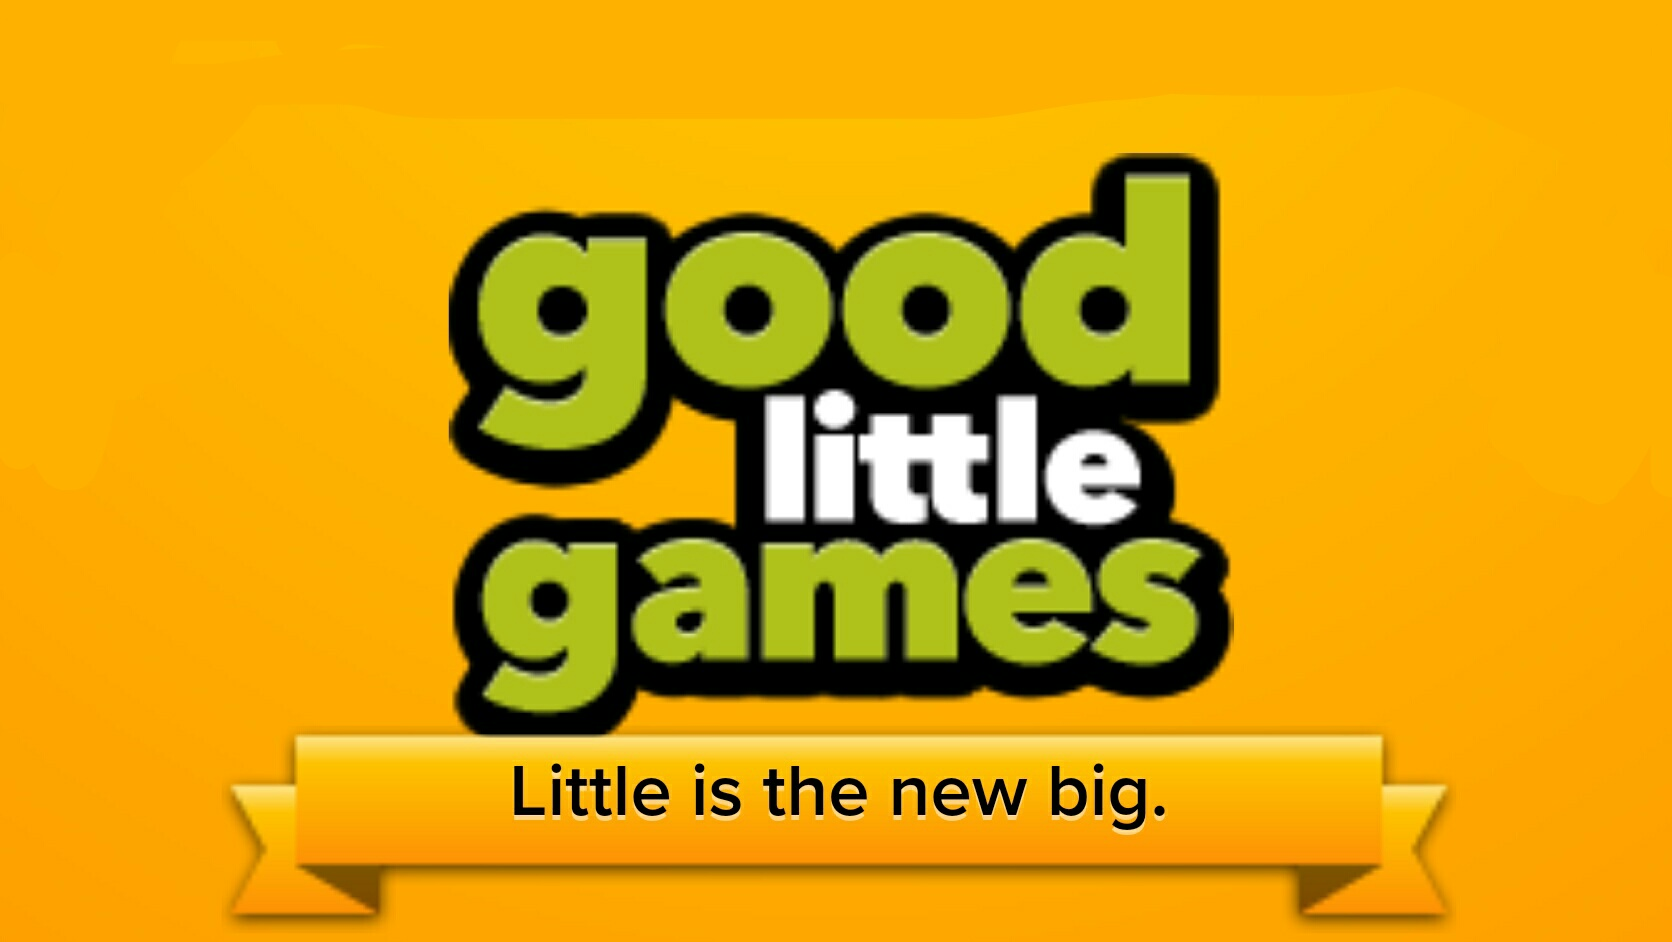 Good Little Games